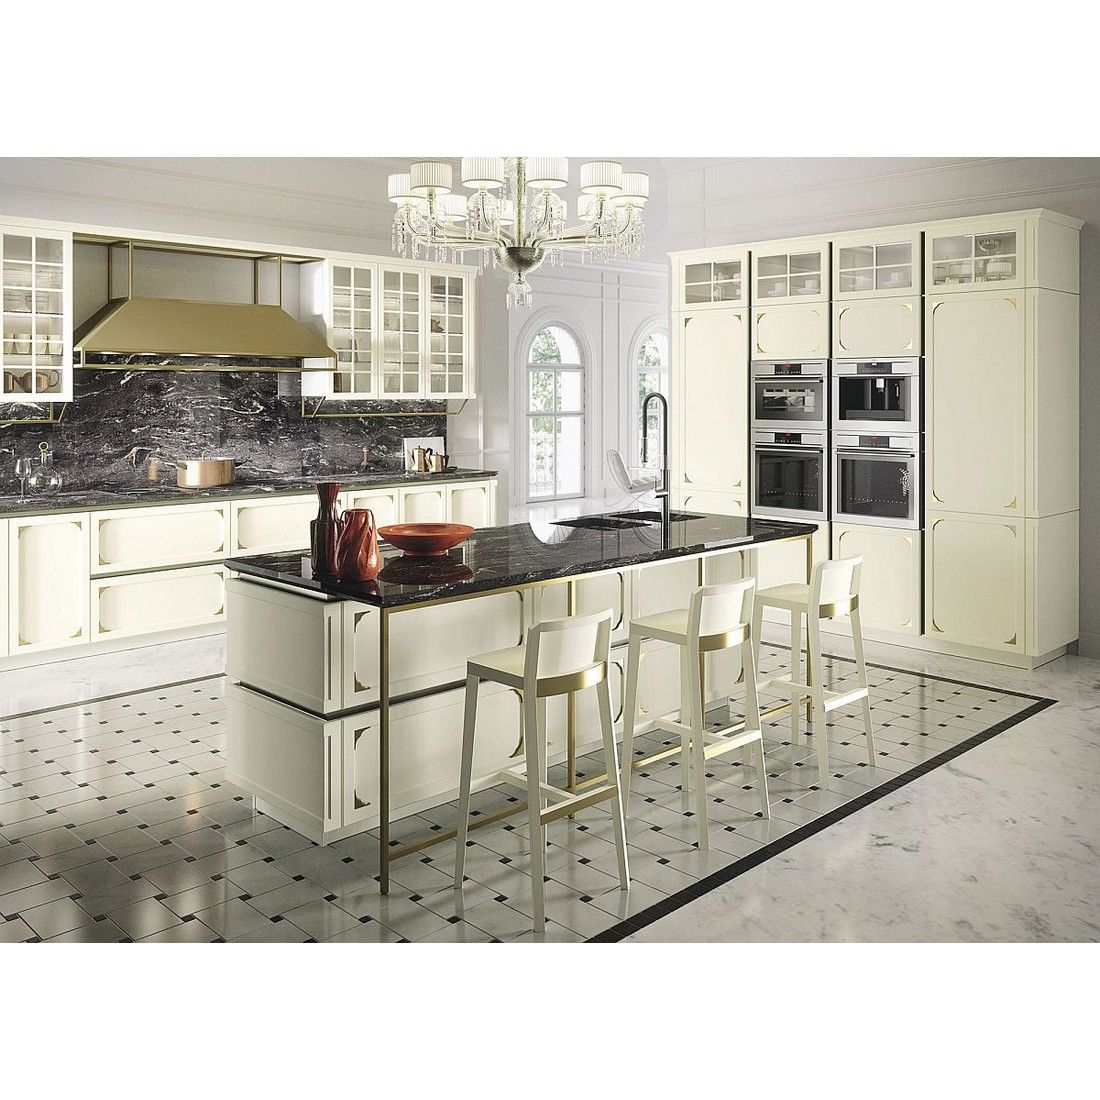 Kitchen Island And Bar At Once In Glamorous Style Yay Or Nay Rumahkukitchen Classic Kitchen Furniture Modern Kitchen Design Timeless Kitchen